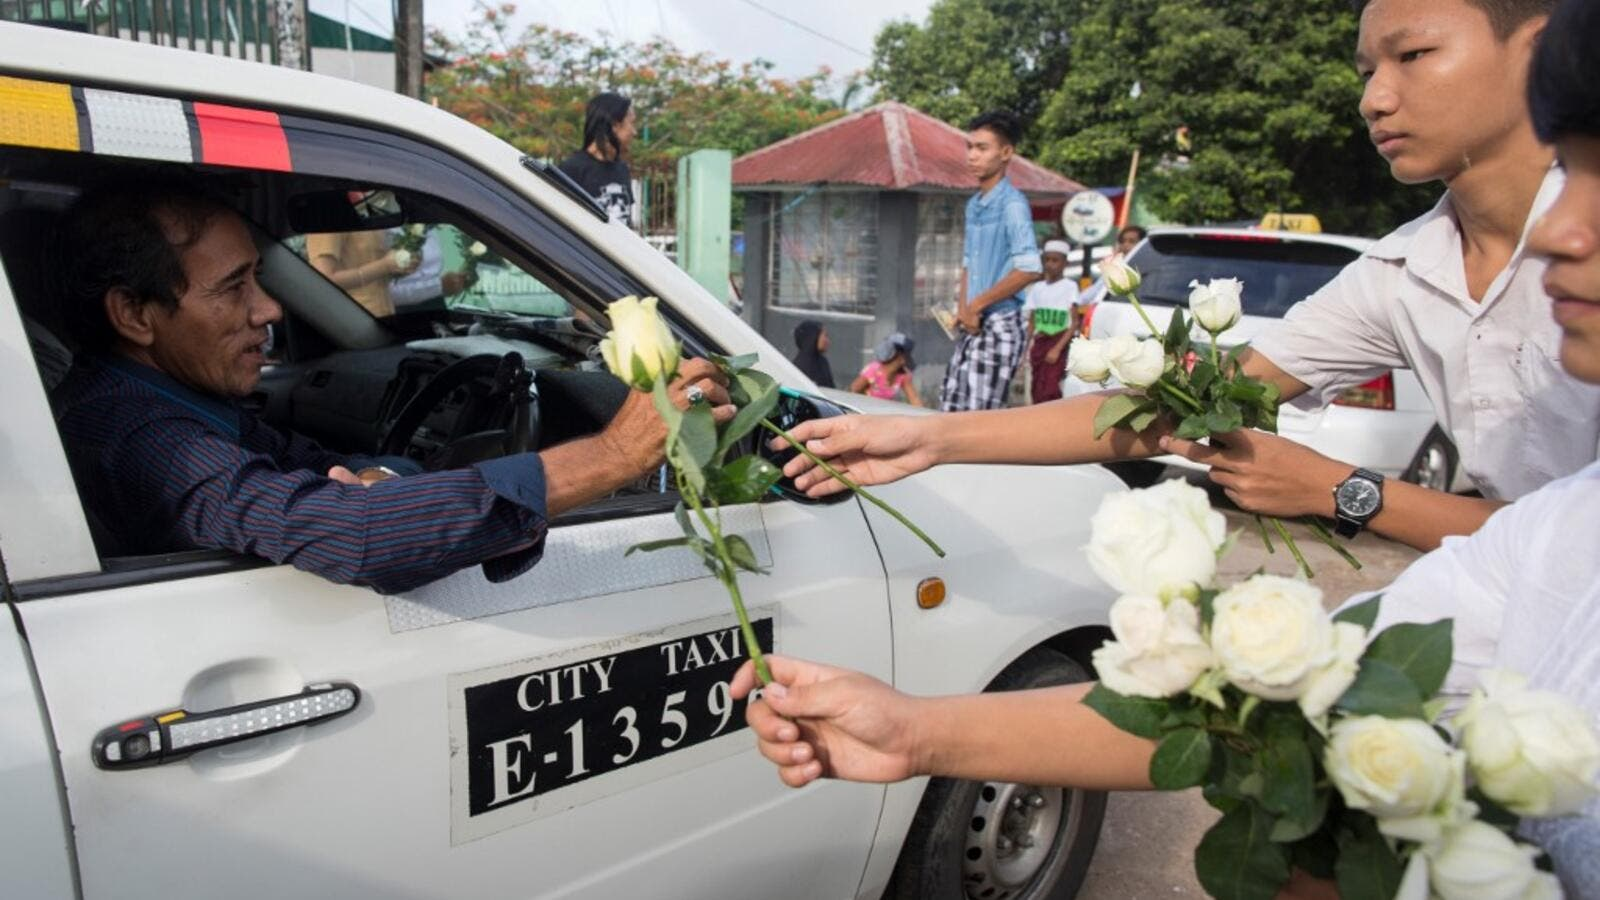 Buddhists give white roses to Muslims as they attend prayers during Eid al-Fitr at Than Lyin township on the outskirts of Yangon on June 5, 2019. (AFP/ File)